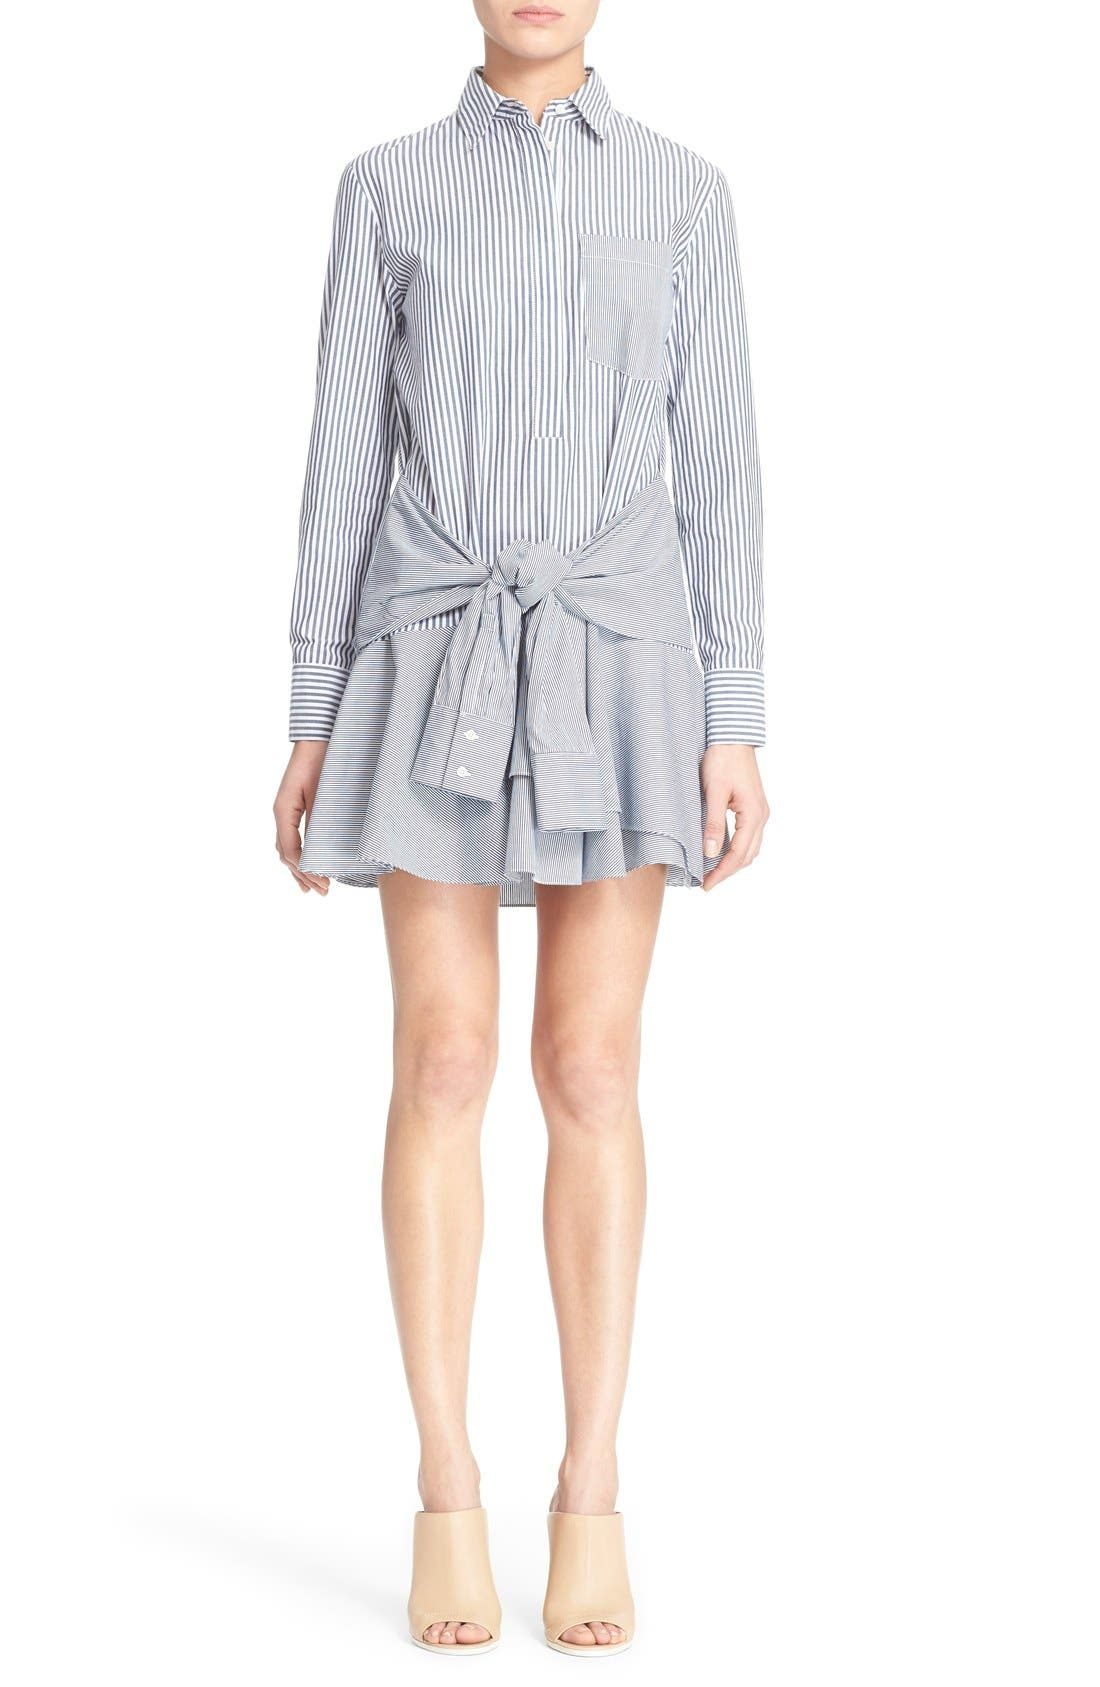 DEREK LAM 10 CROSBY, Tie Waist Shirtdress, Main thumbnail 1, color, 419